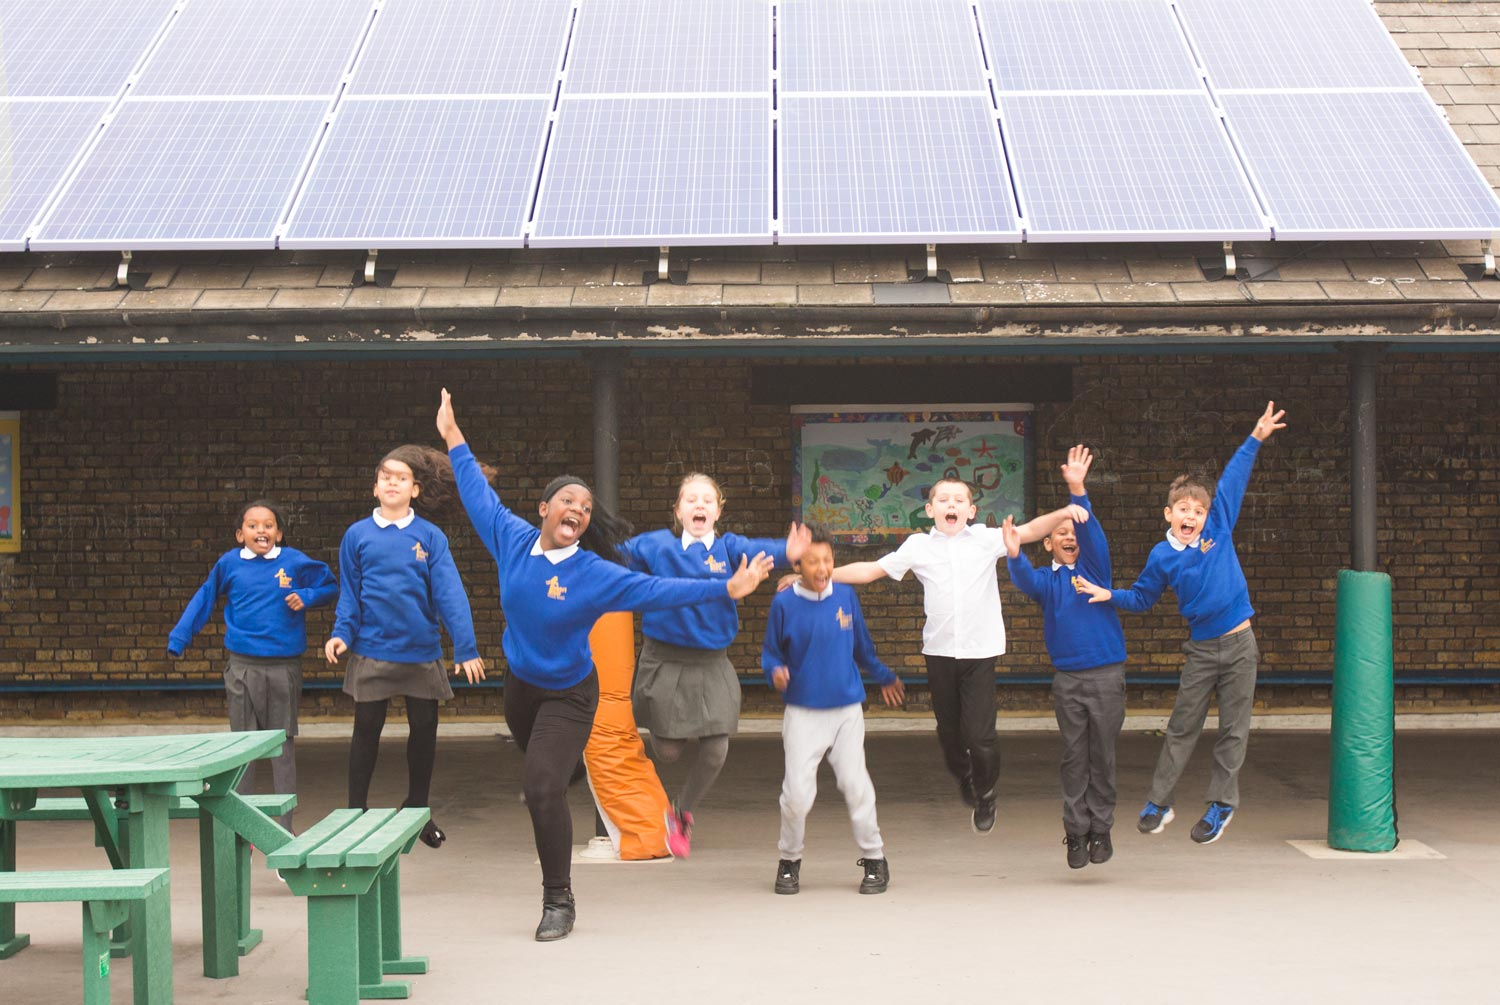 Robert Blair primary and their brand new solar panels